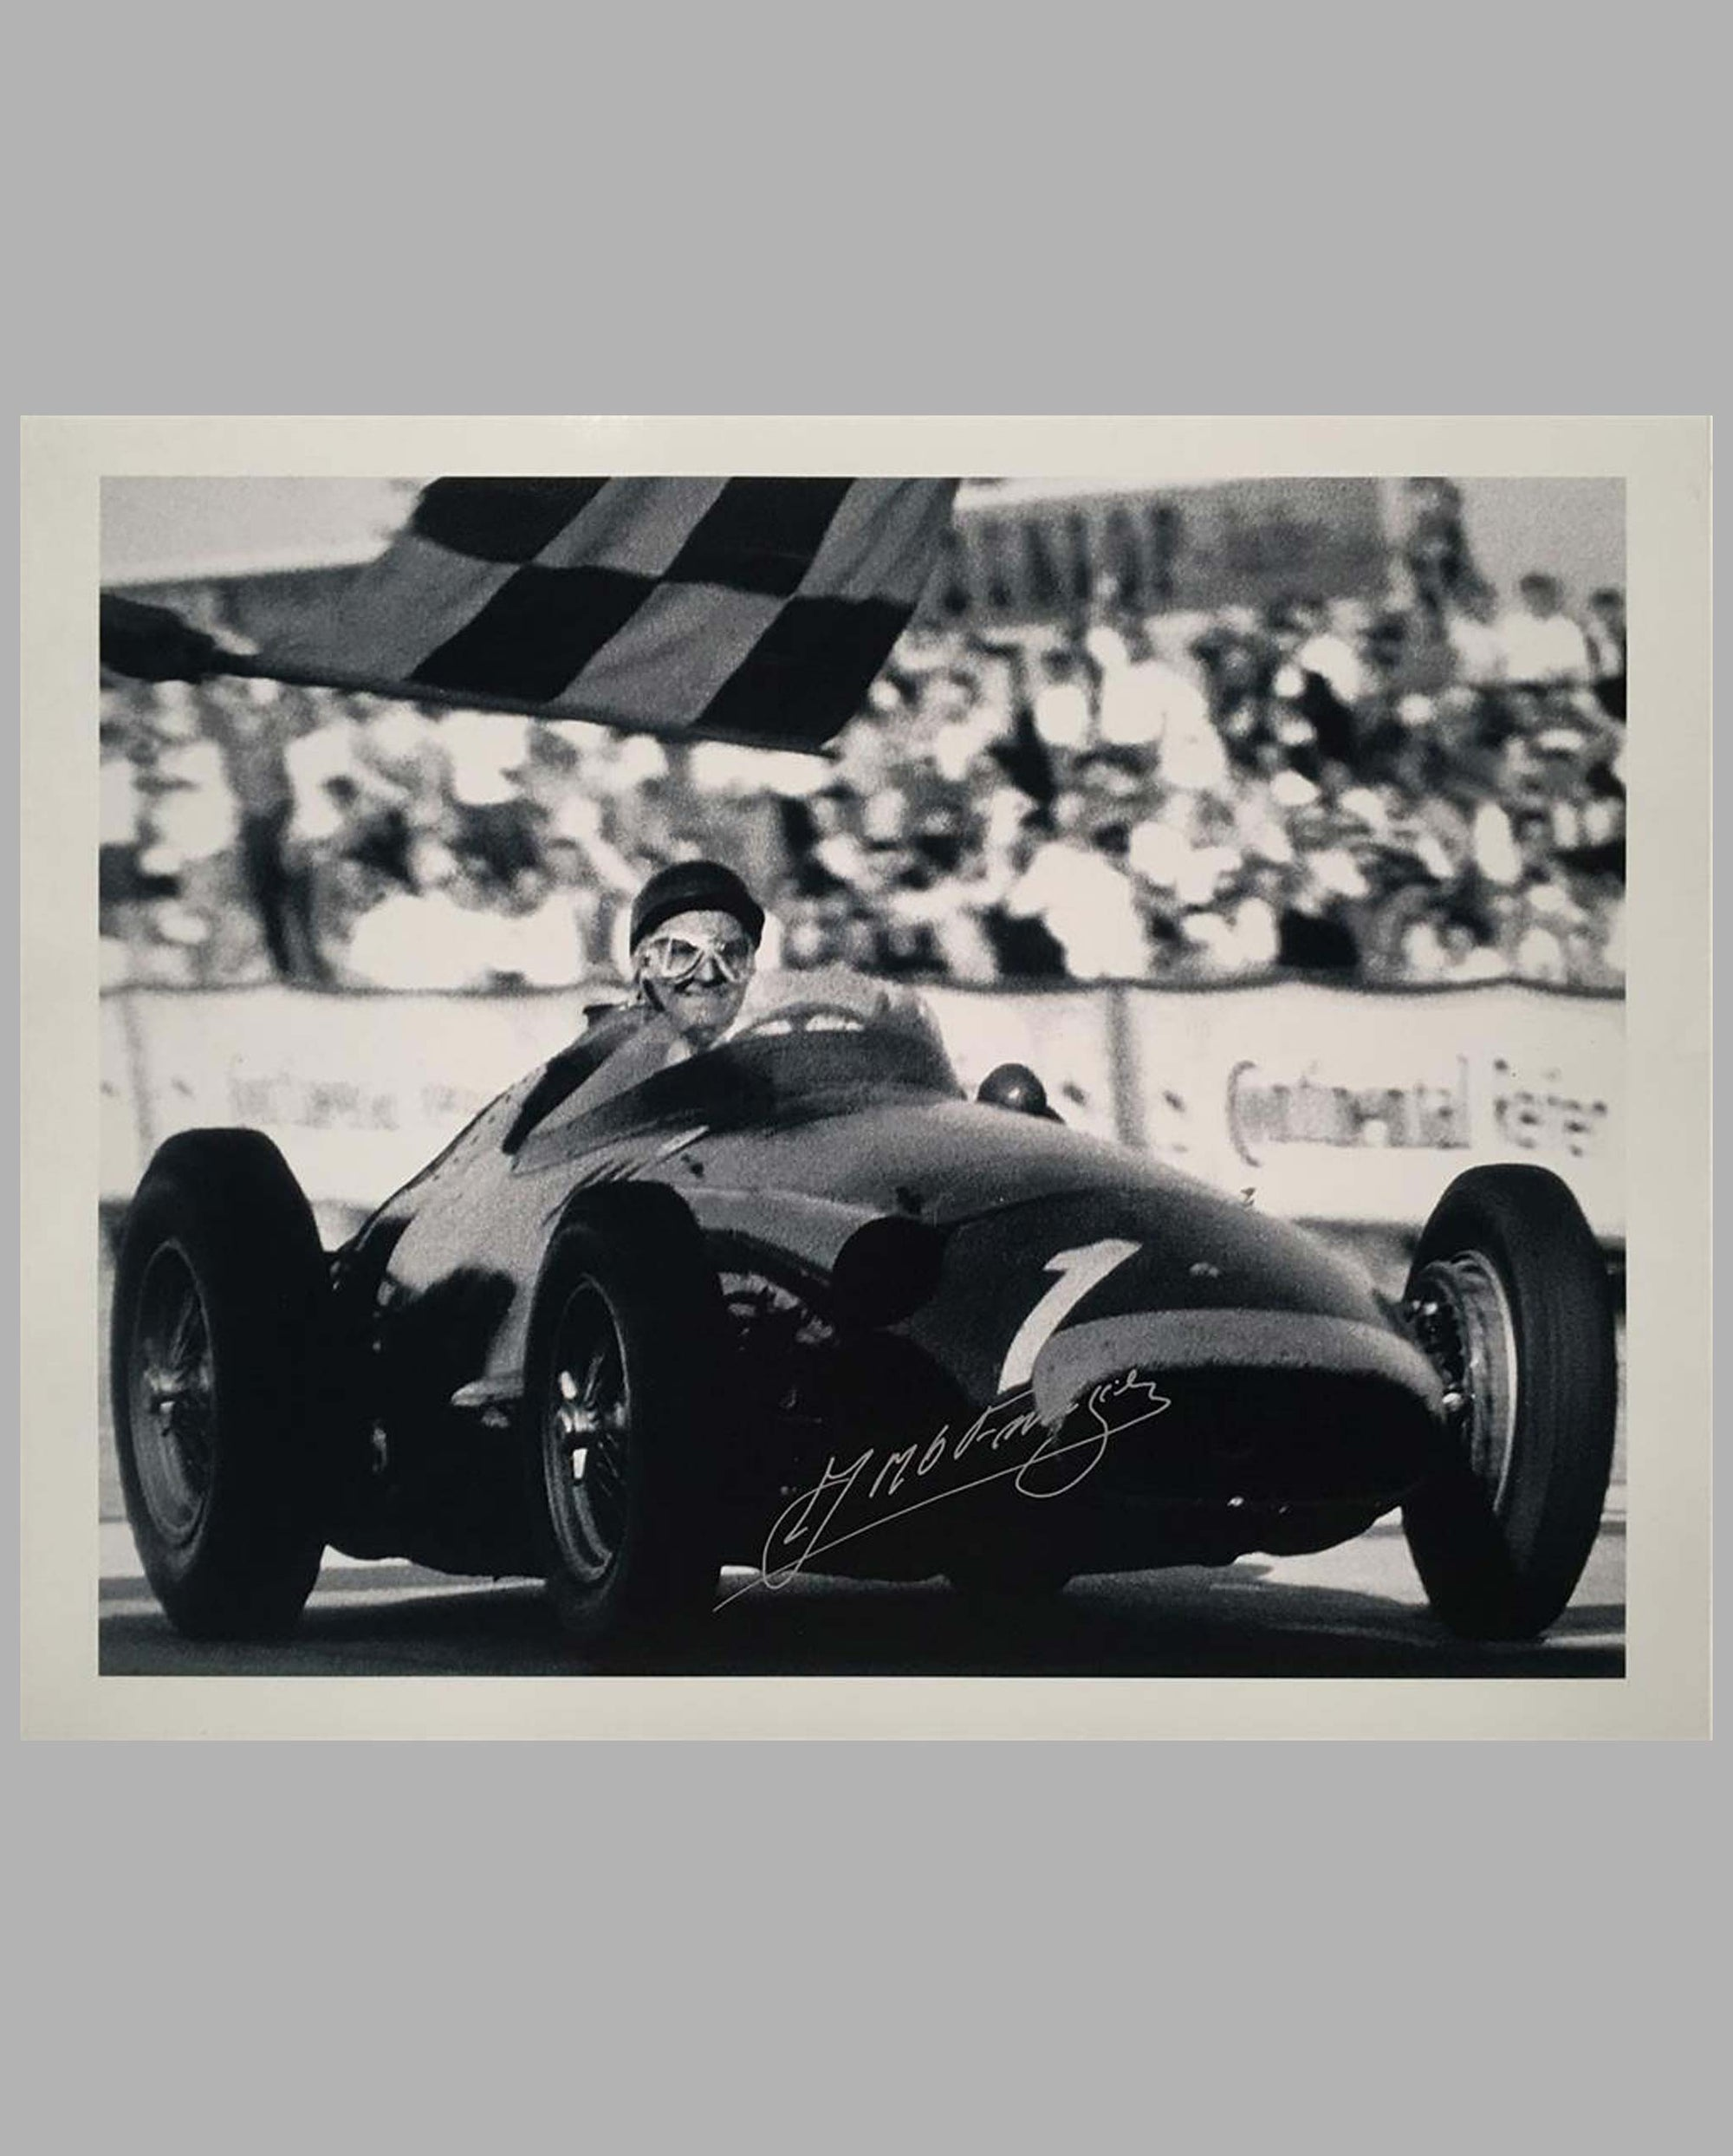 Juan Manuel Fangio Maserati 250F taking the checkered flag, b&w autographed Fangio photograph by Fernando Gomez